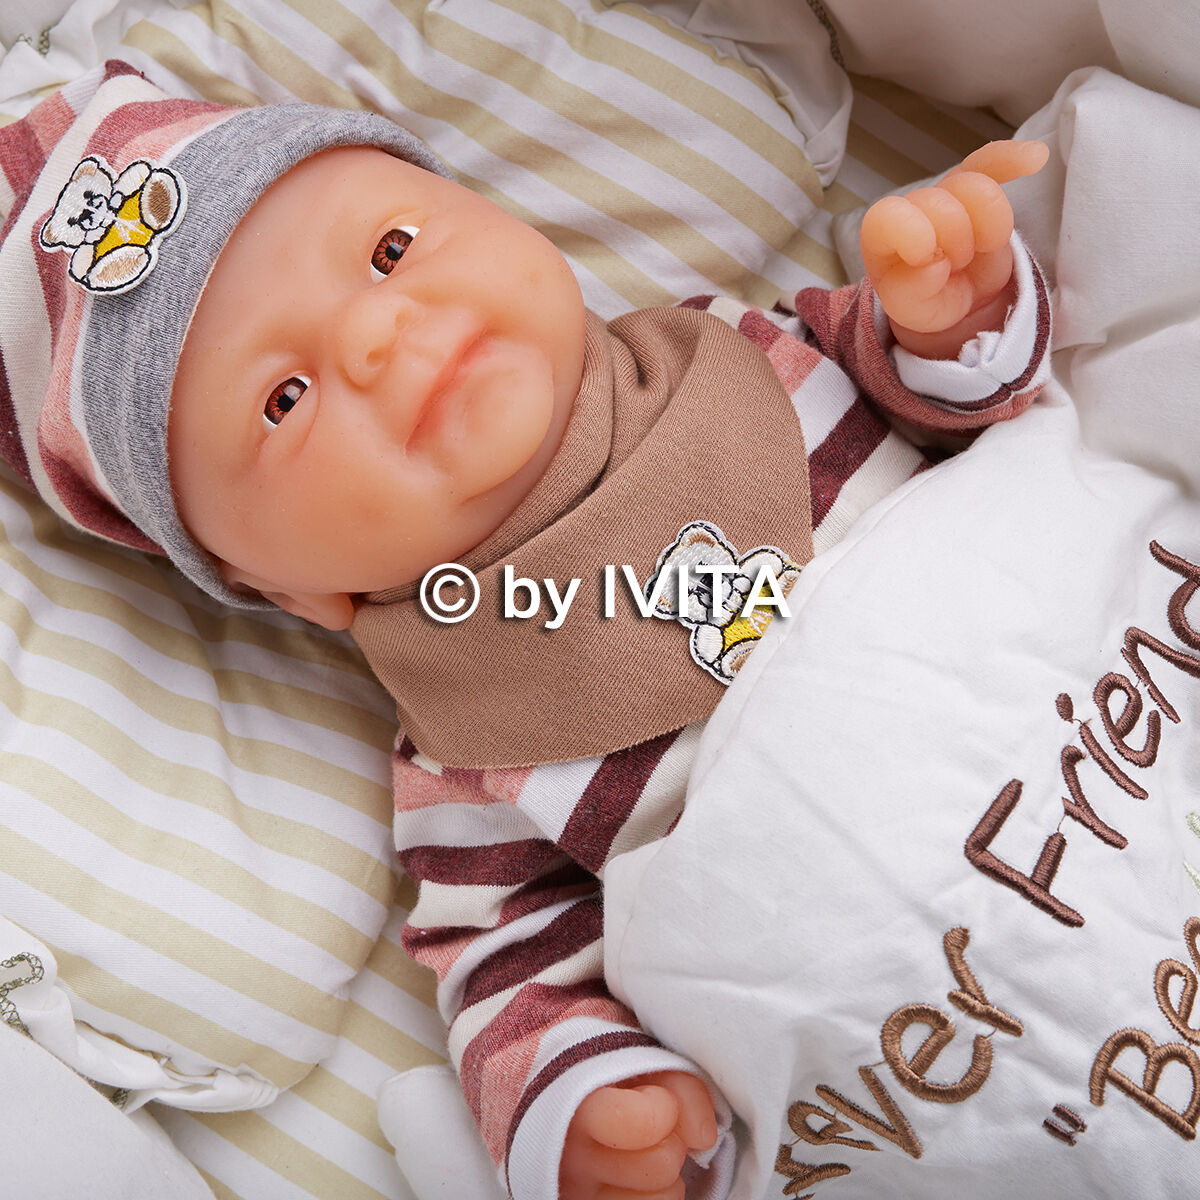 Premature Baby Gifts Ireland : Full body silicone reborn baby doll girl alive preemie